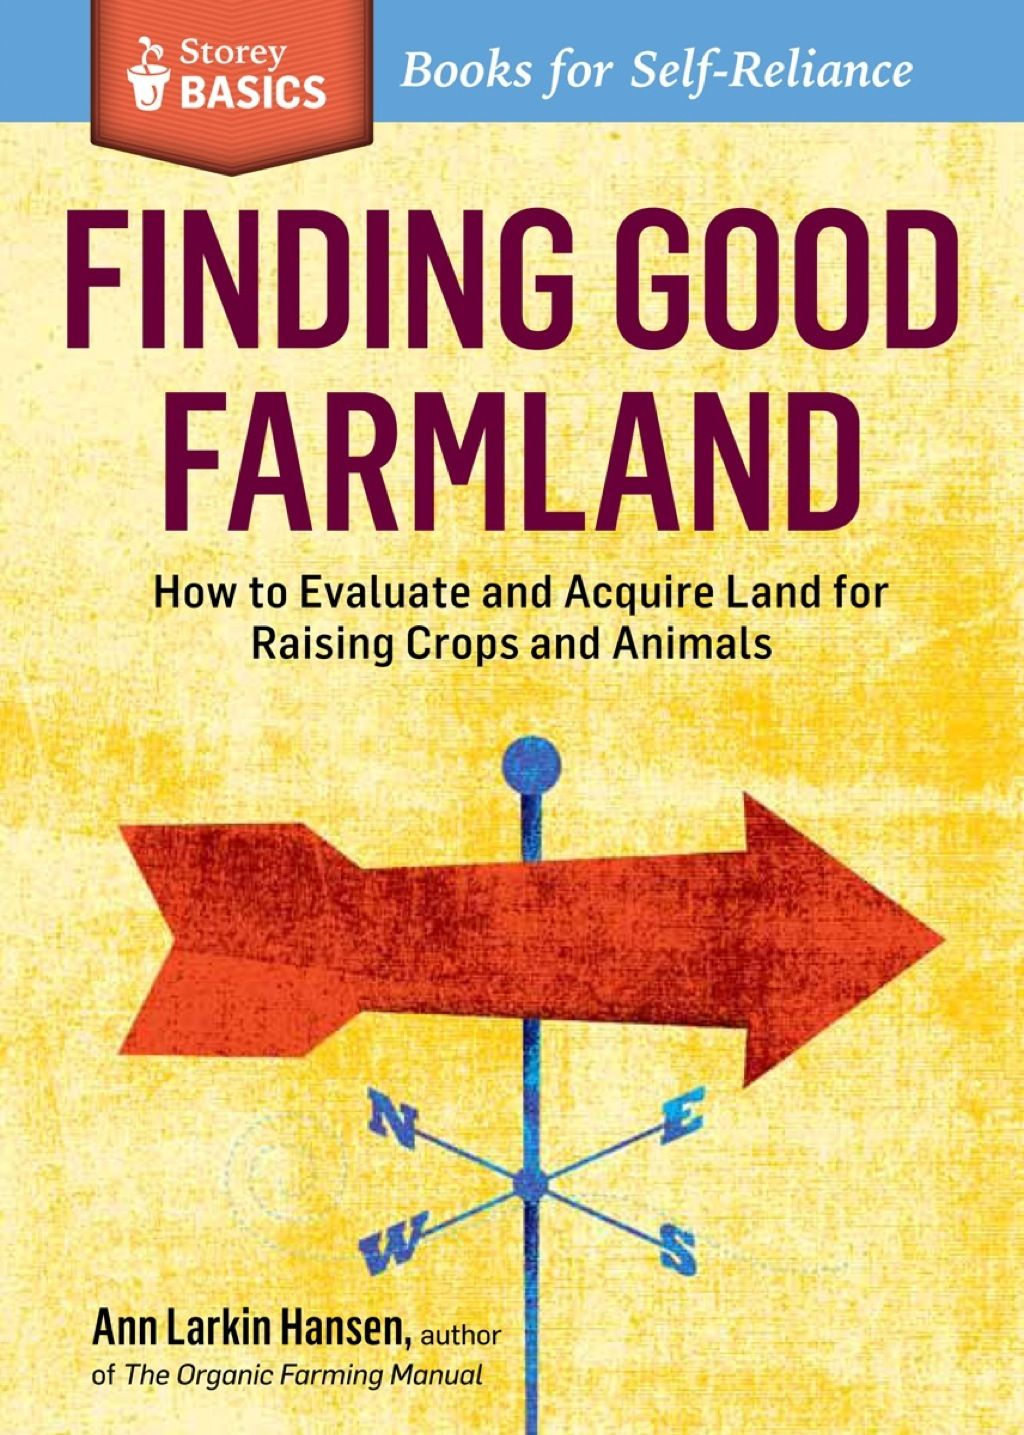 Finding Good Farmland Ebook With Images